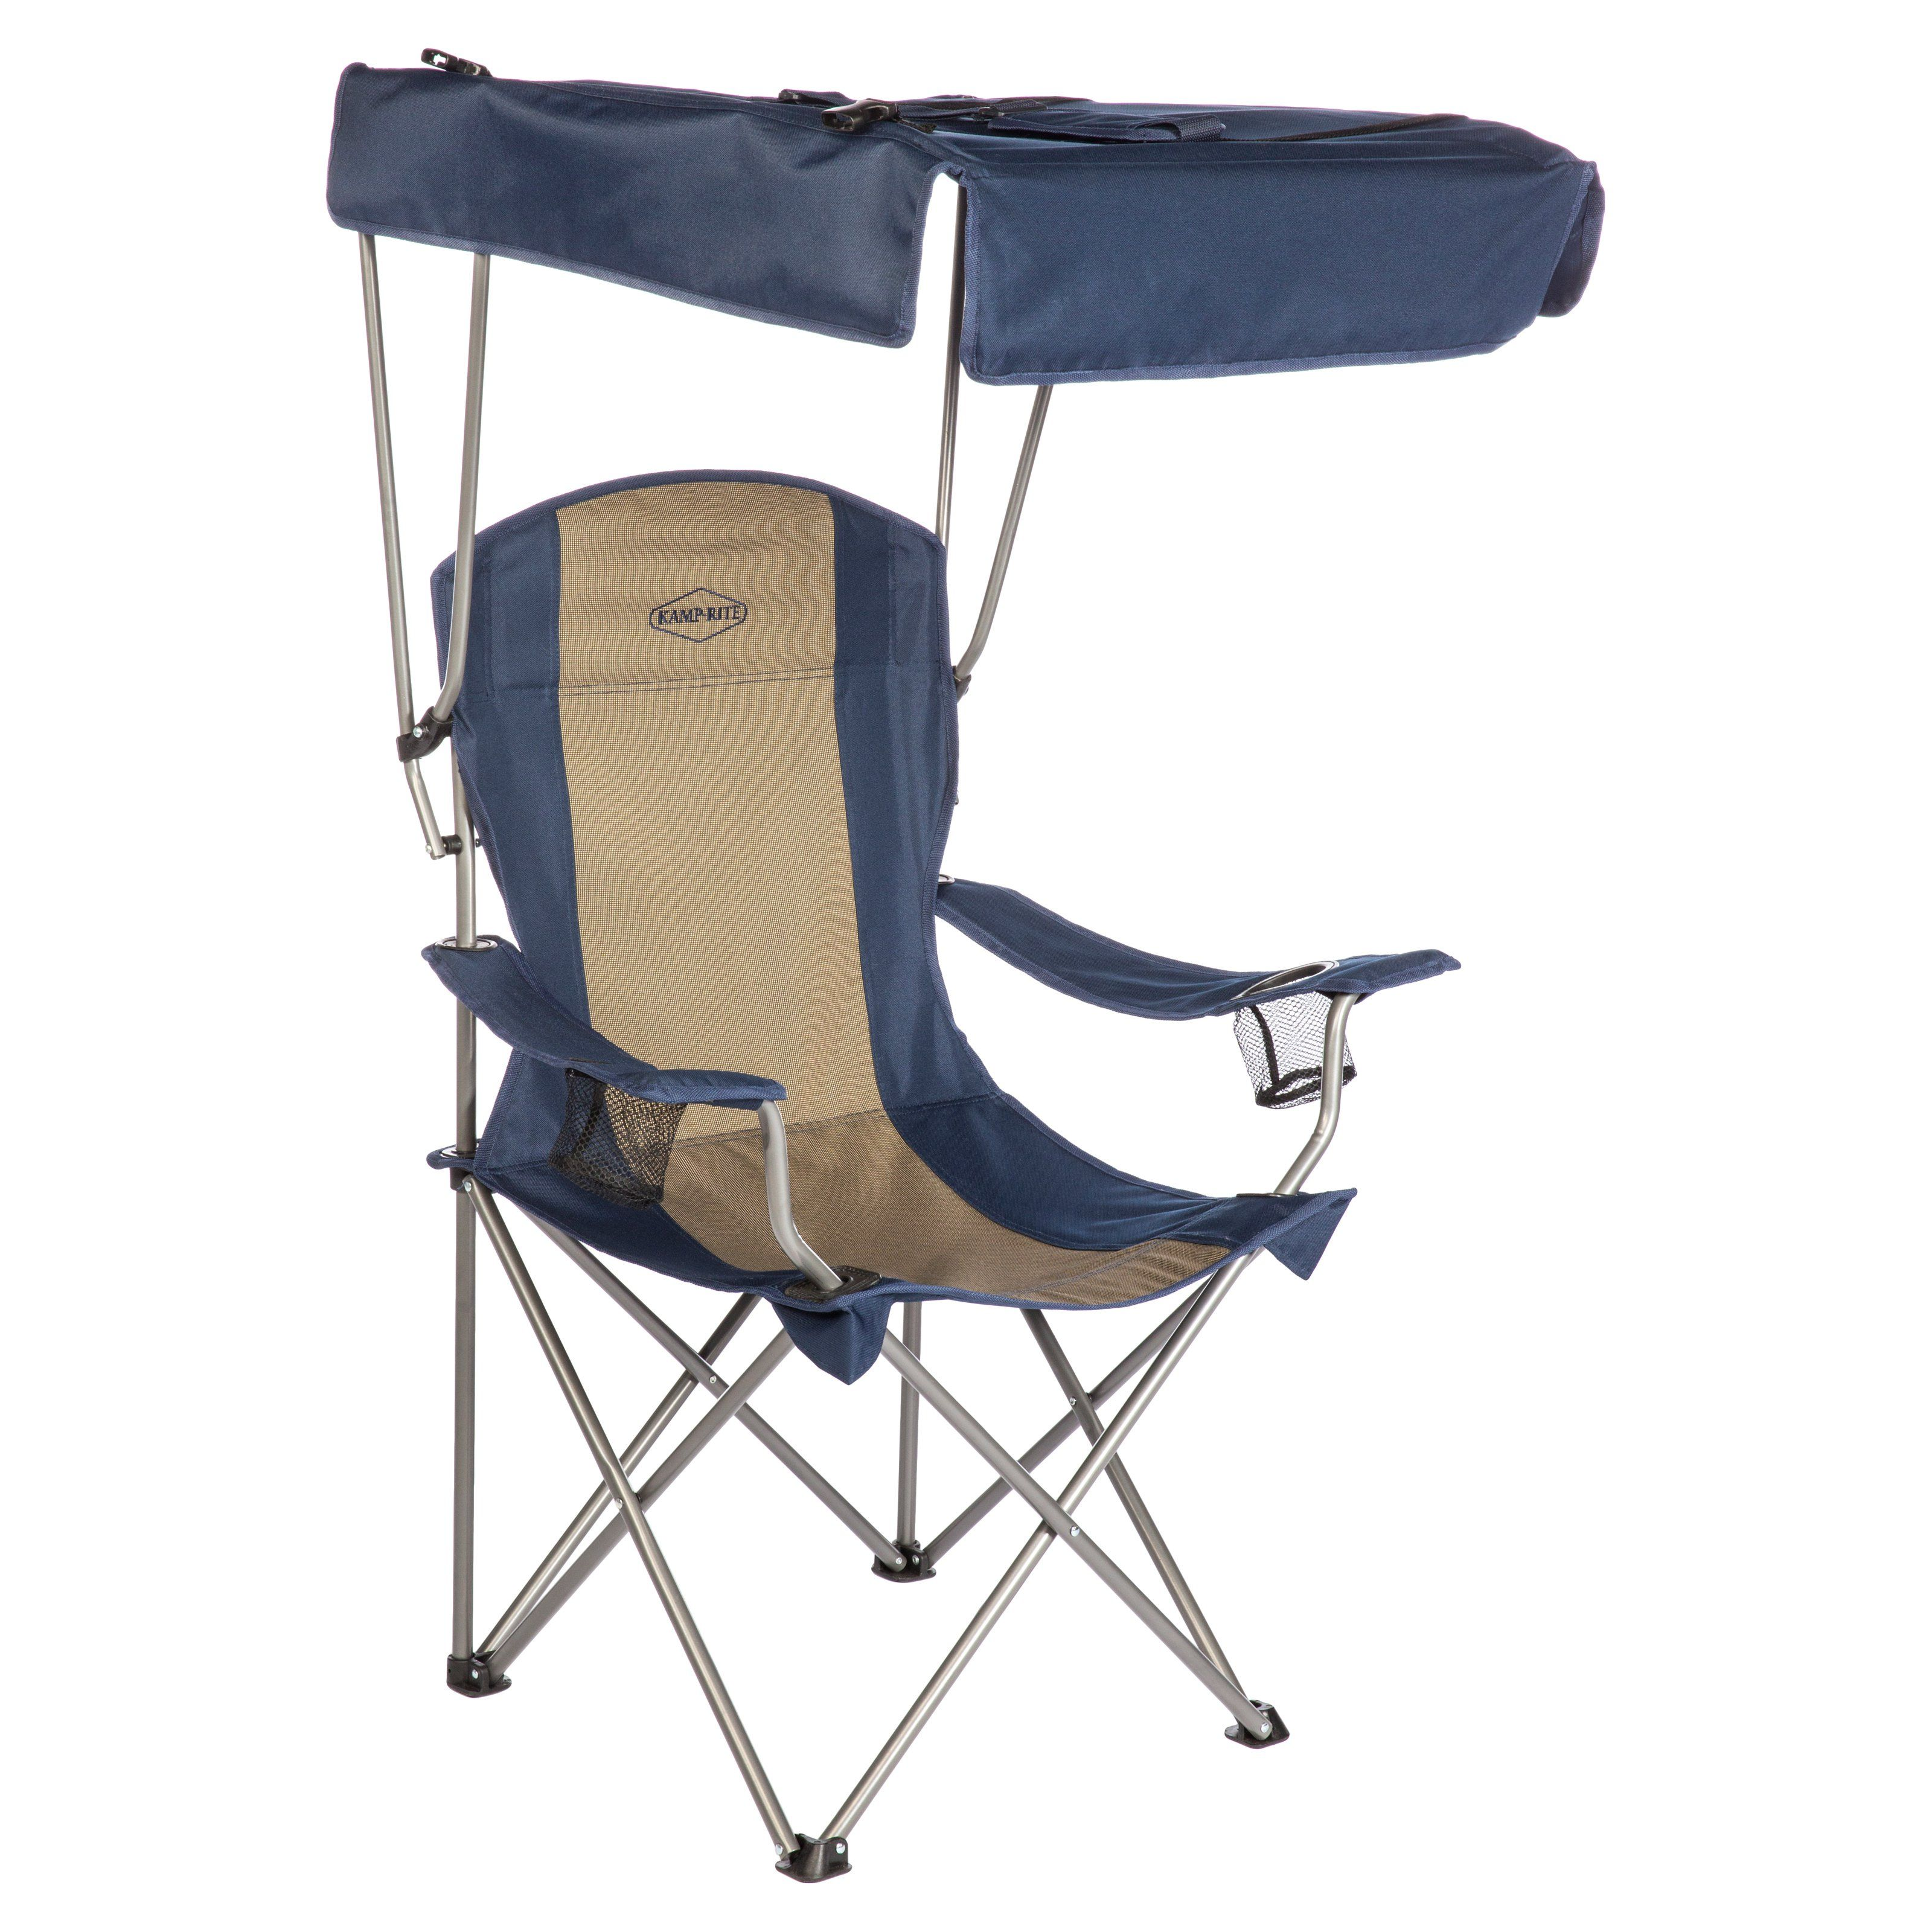 Outdoor kamprite folding lawn chair with shade canopy cc